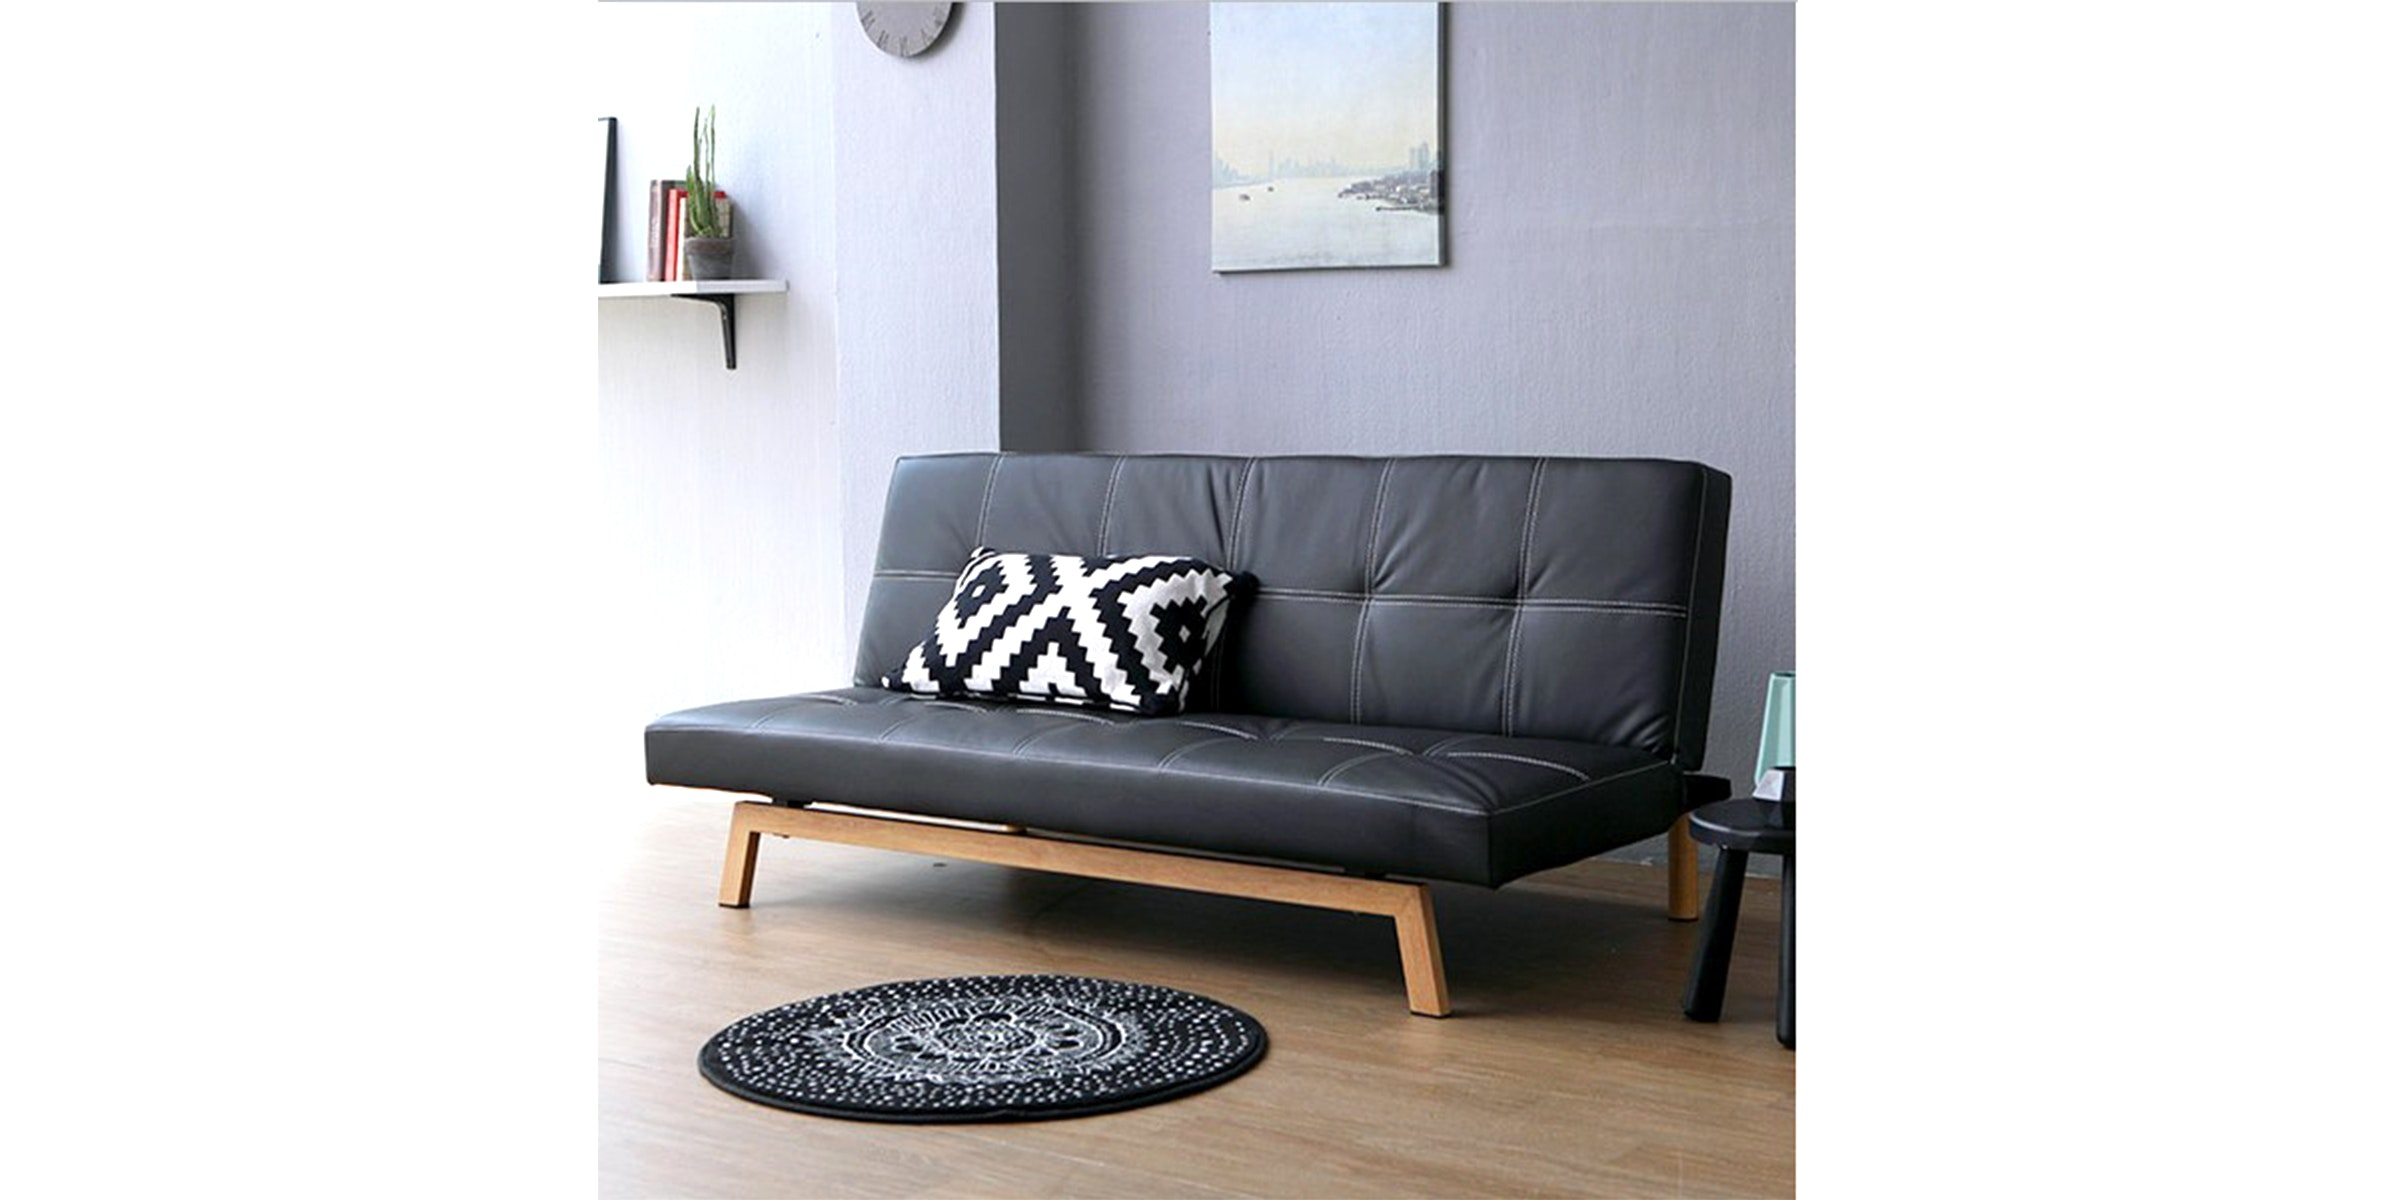 Olive House Sofa Bed Soi MLM-298153 - Black